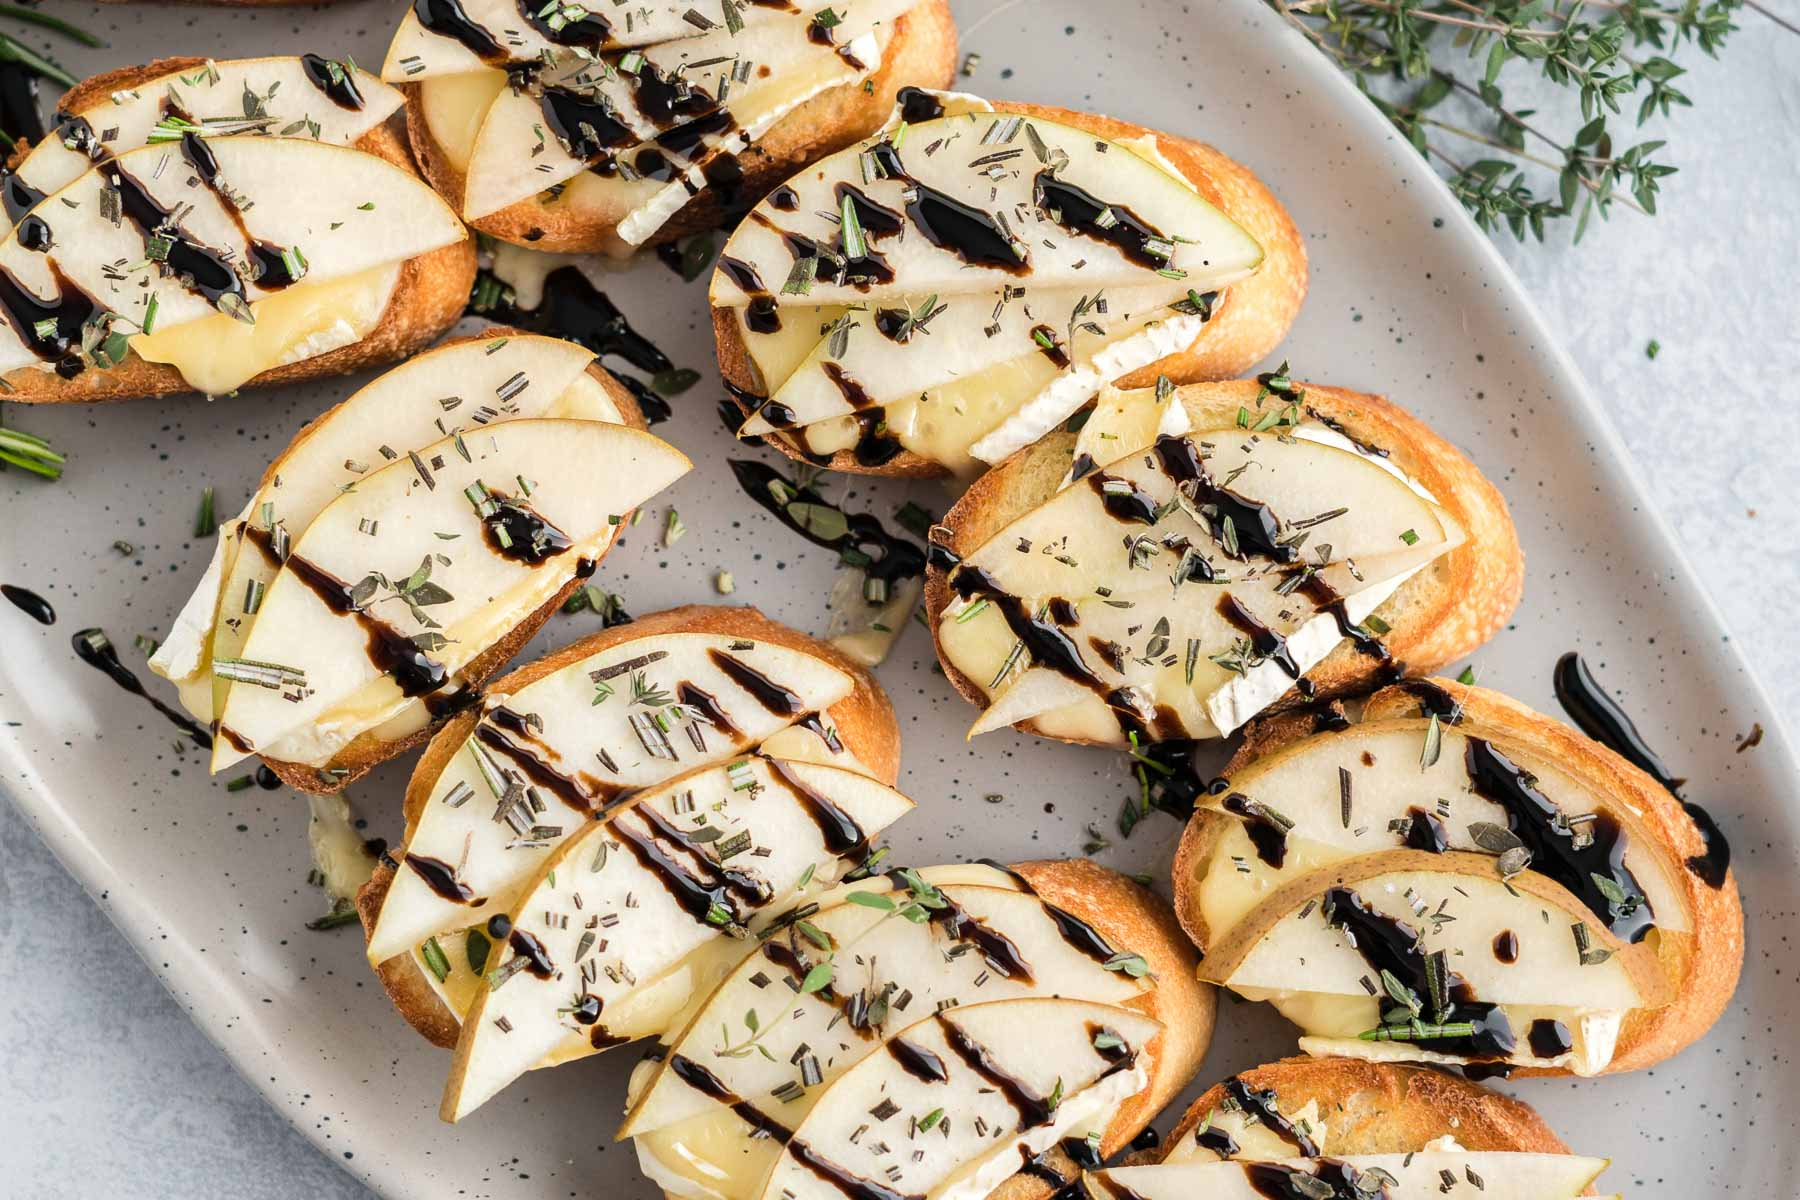 Platter of crostini with balsamic drizzle.